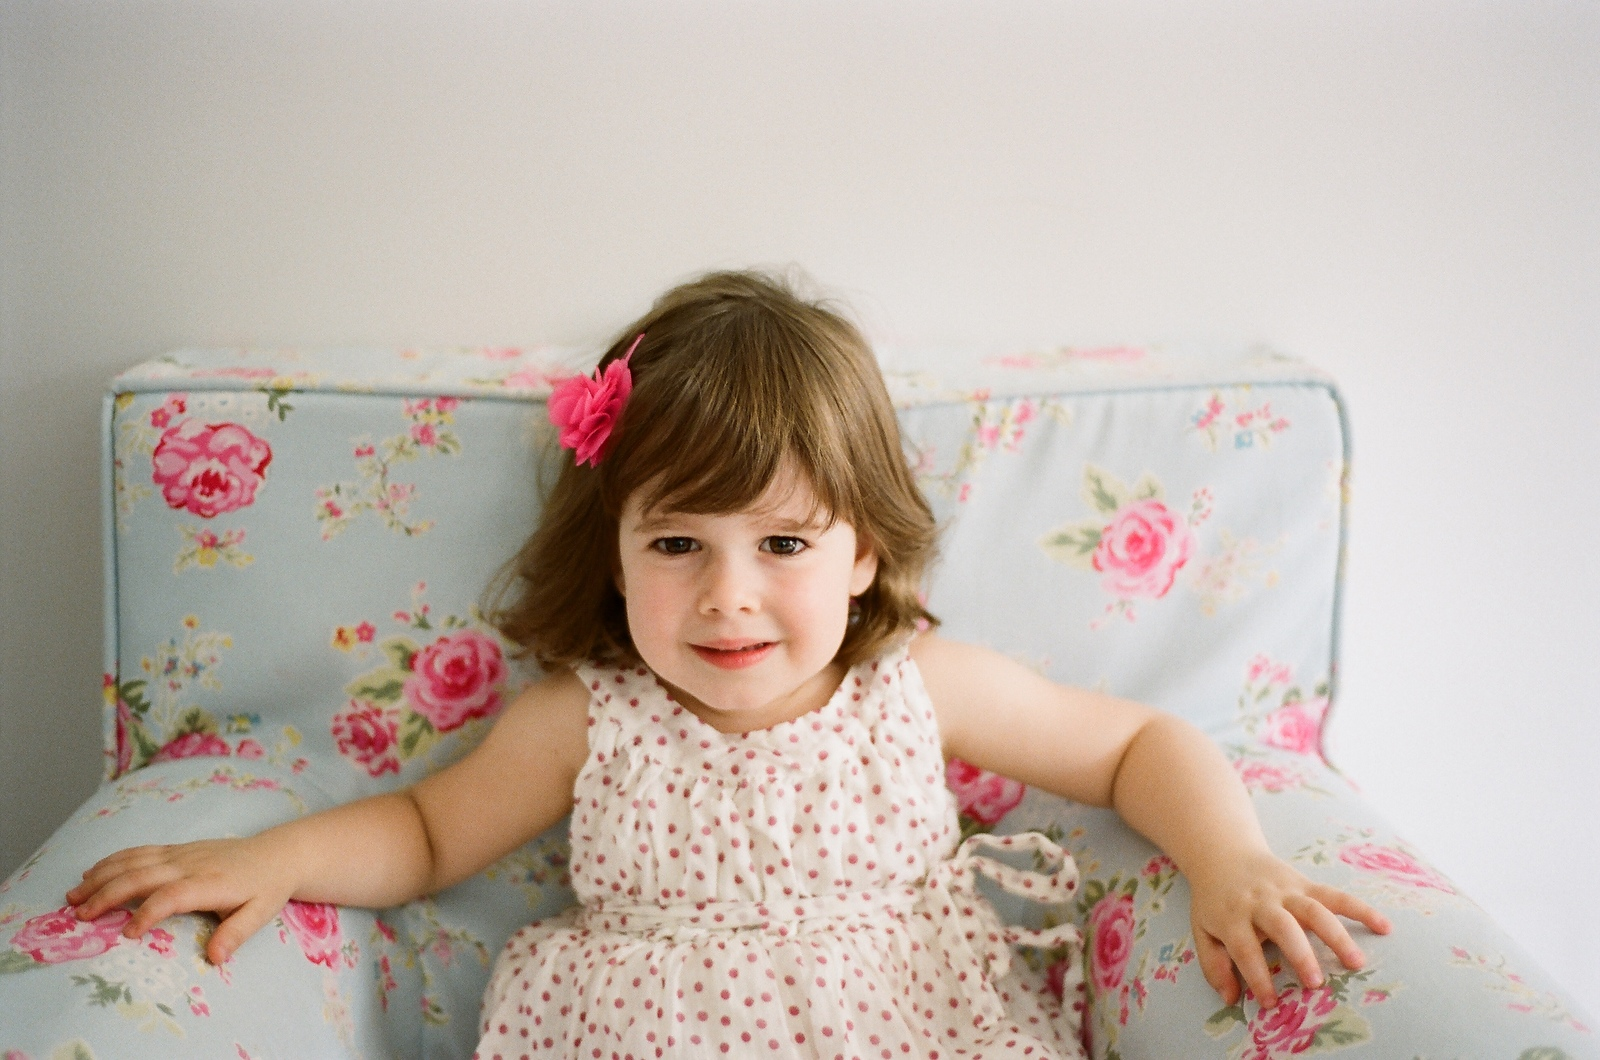 photographing children at home by wendy g photography